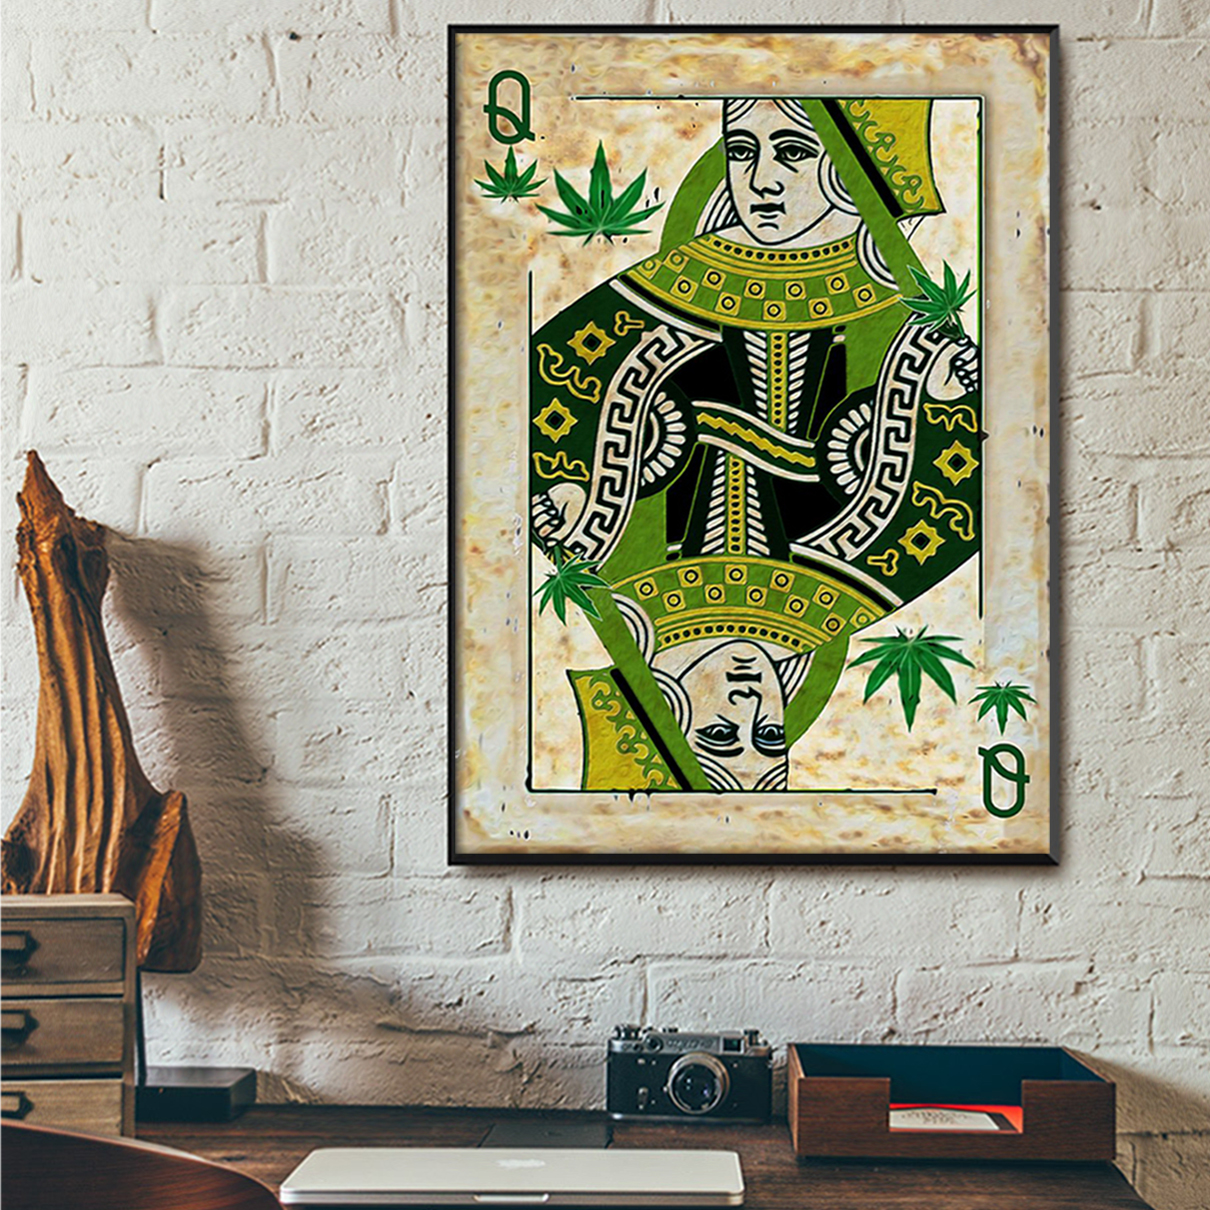 Queen of weed poster A2